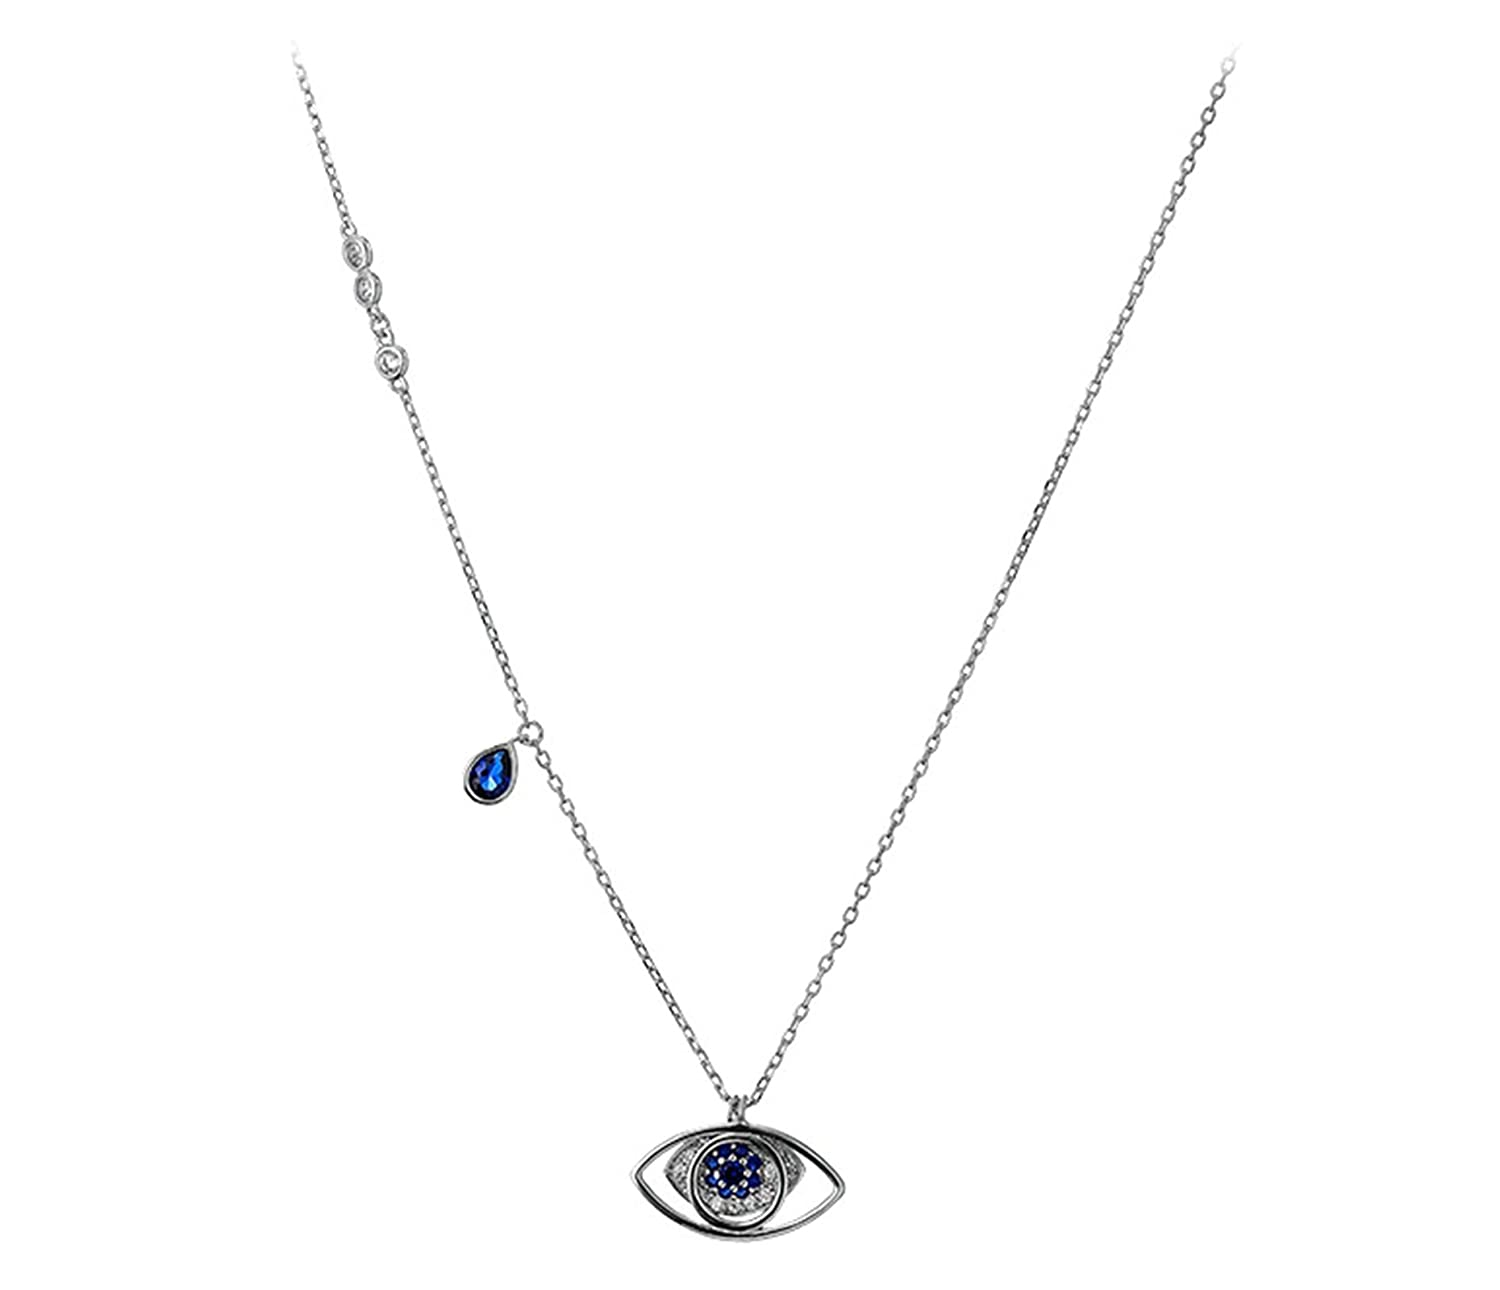 Amazon.com  Gnzoe Women 925 Sterling Silver Eye Necklace Pendant Silver  with Blue CZ 42CM  Jewelry 84fcf9baf1